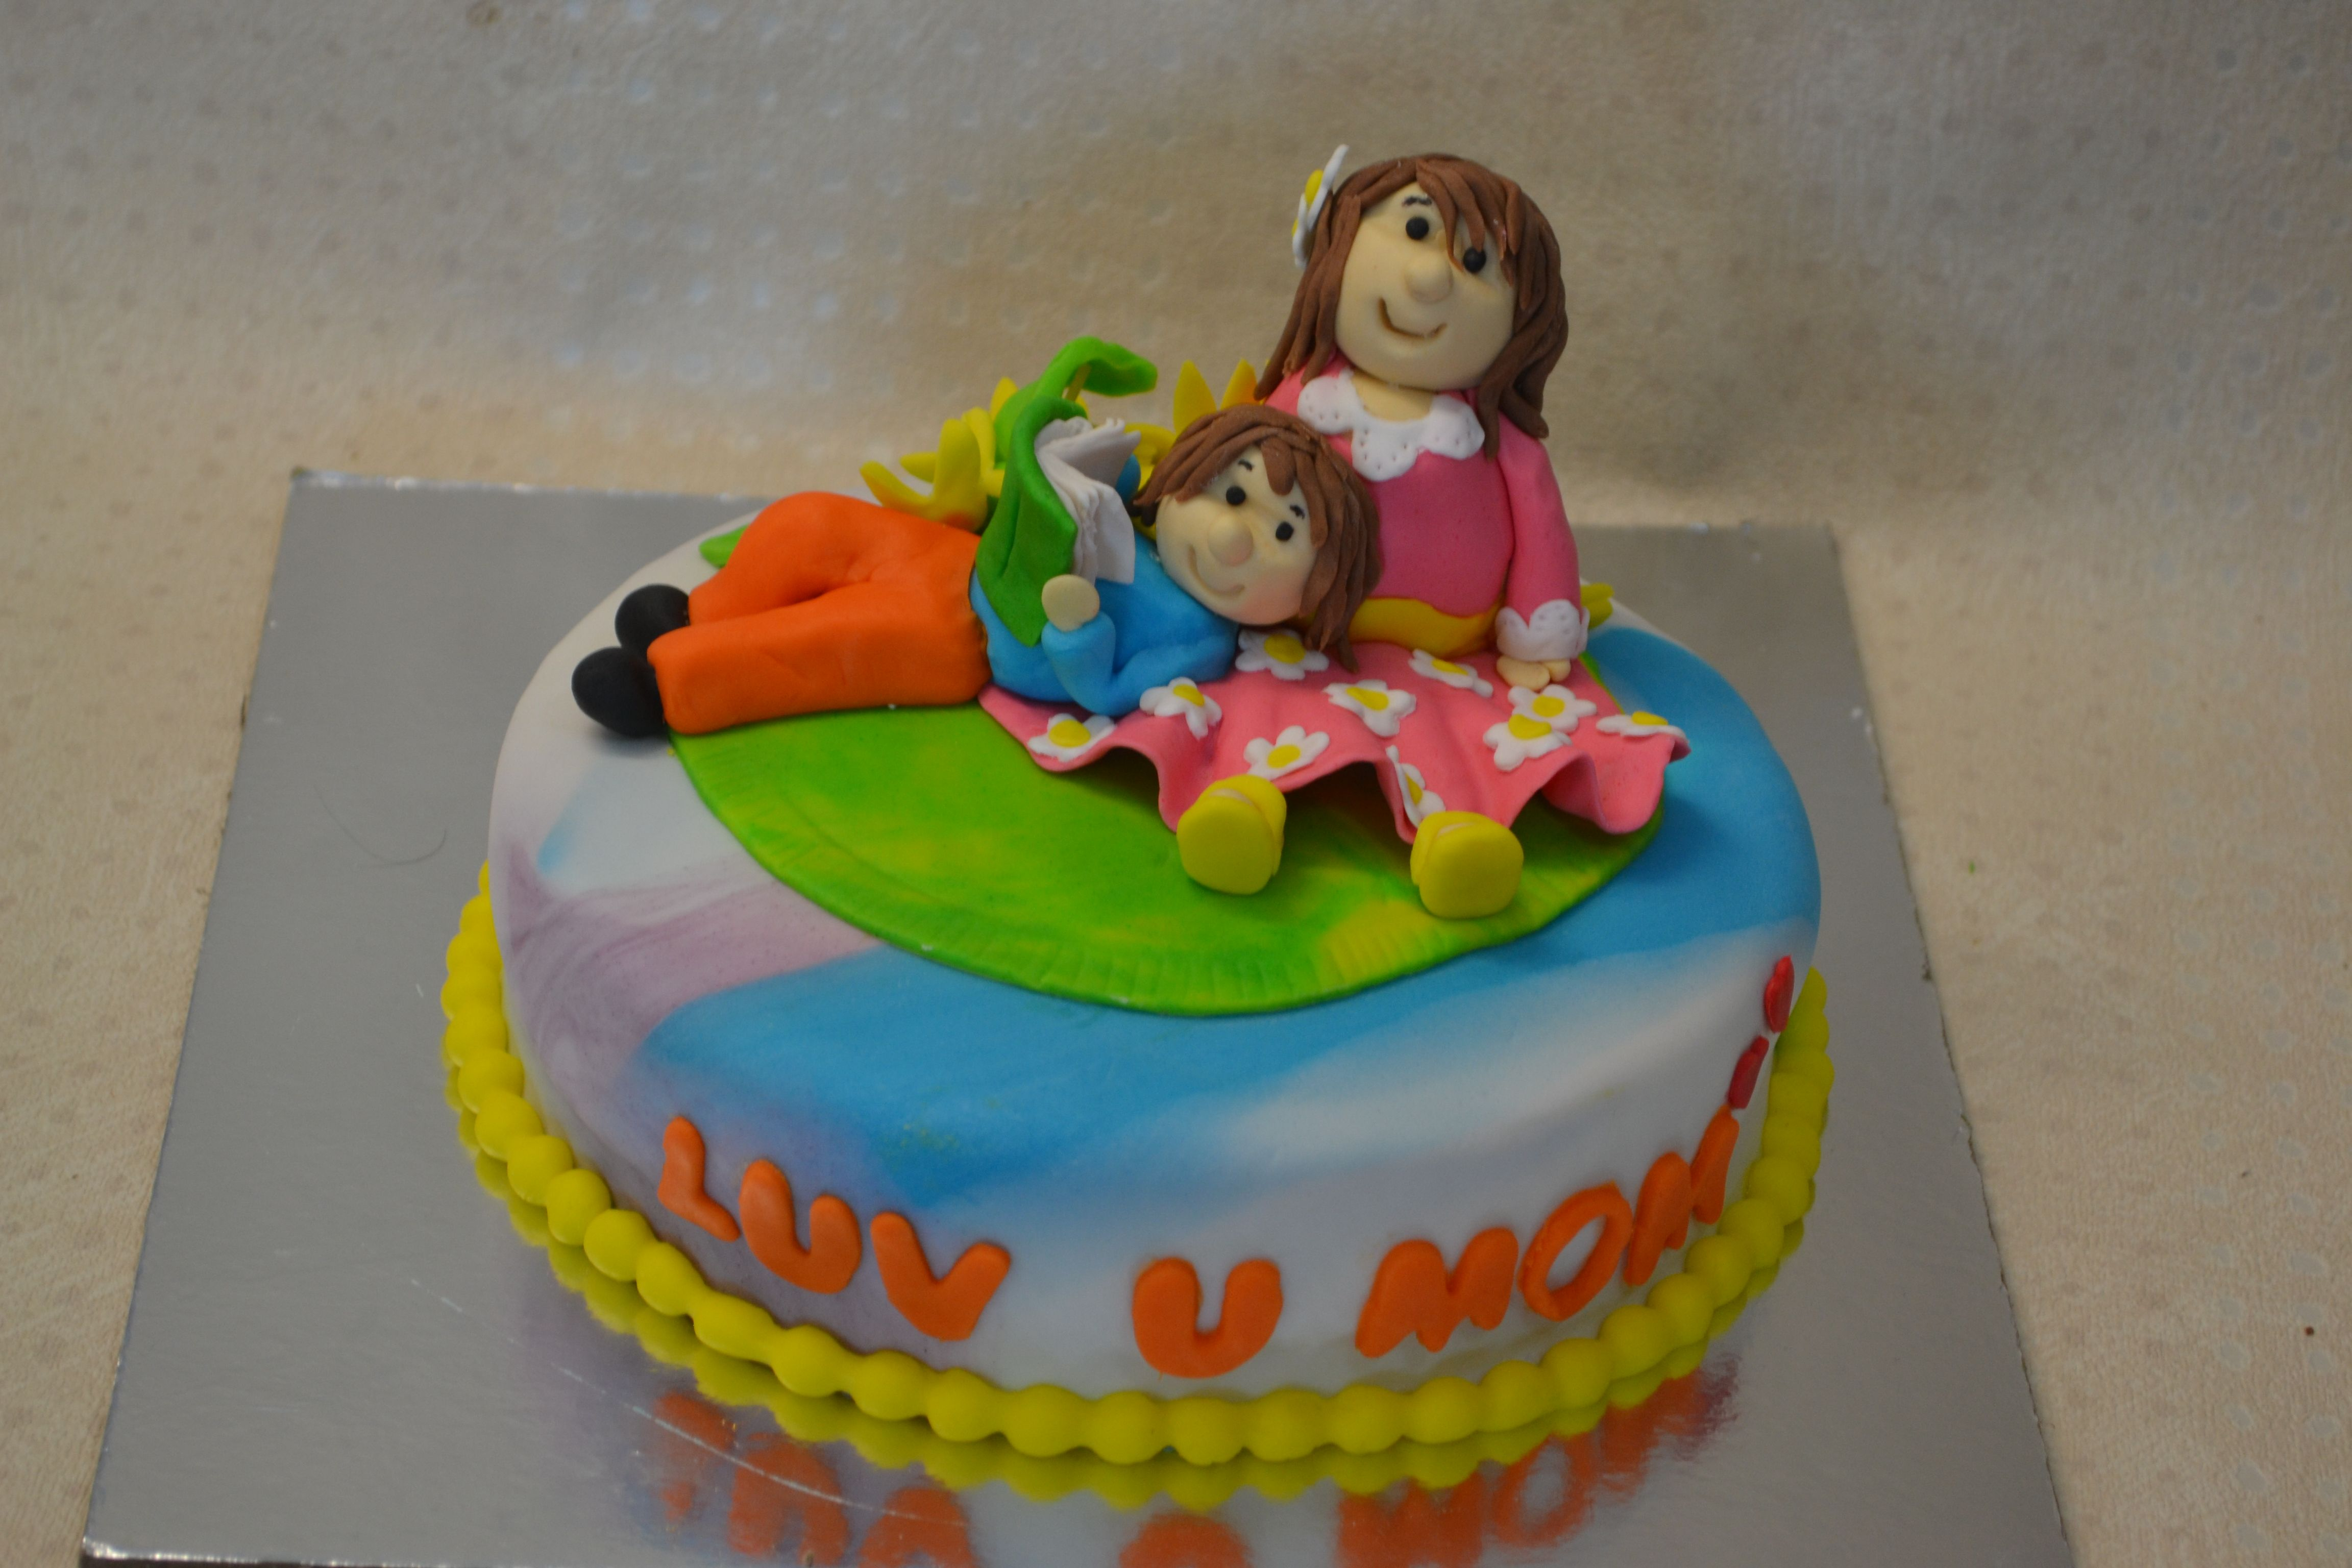 Mother And Son Fondant Cake Made By Beginner Student At 32 Degree